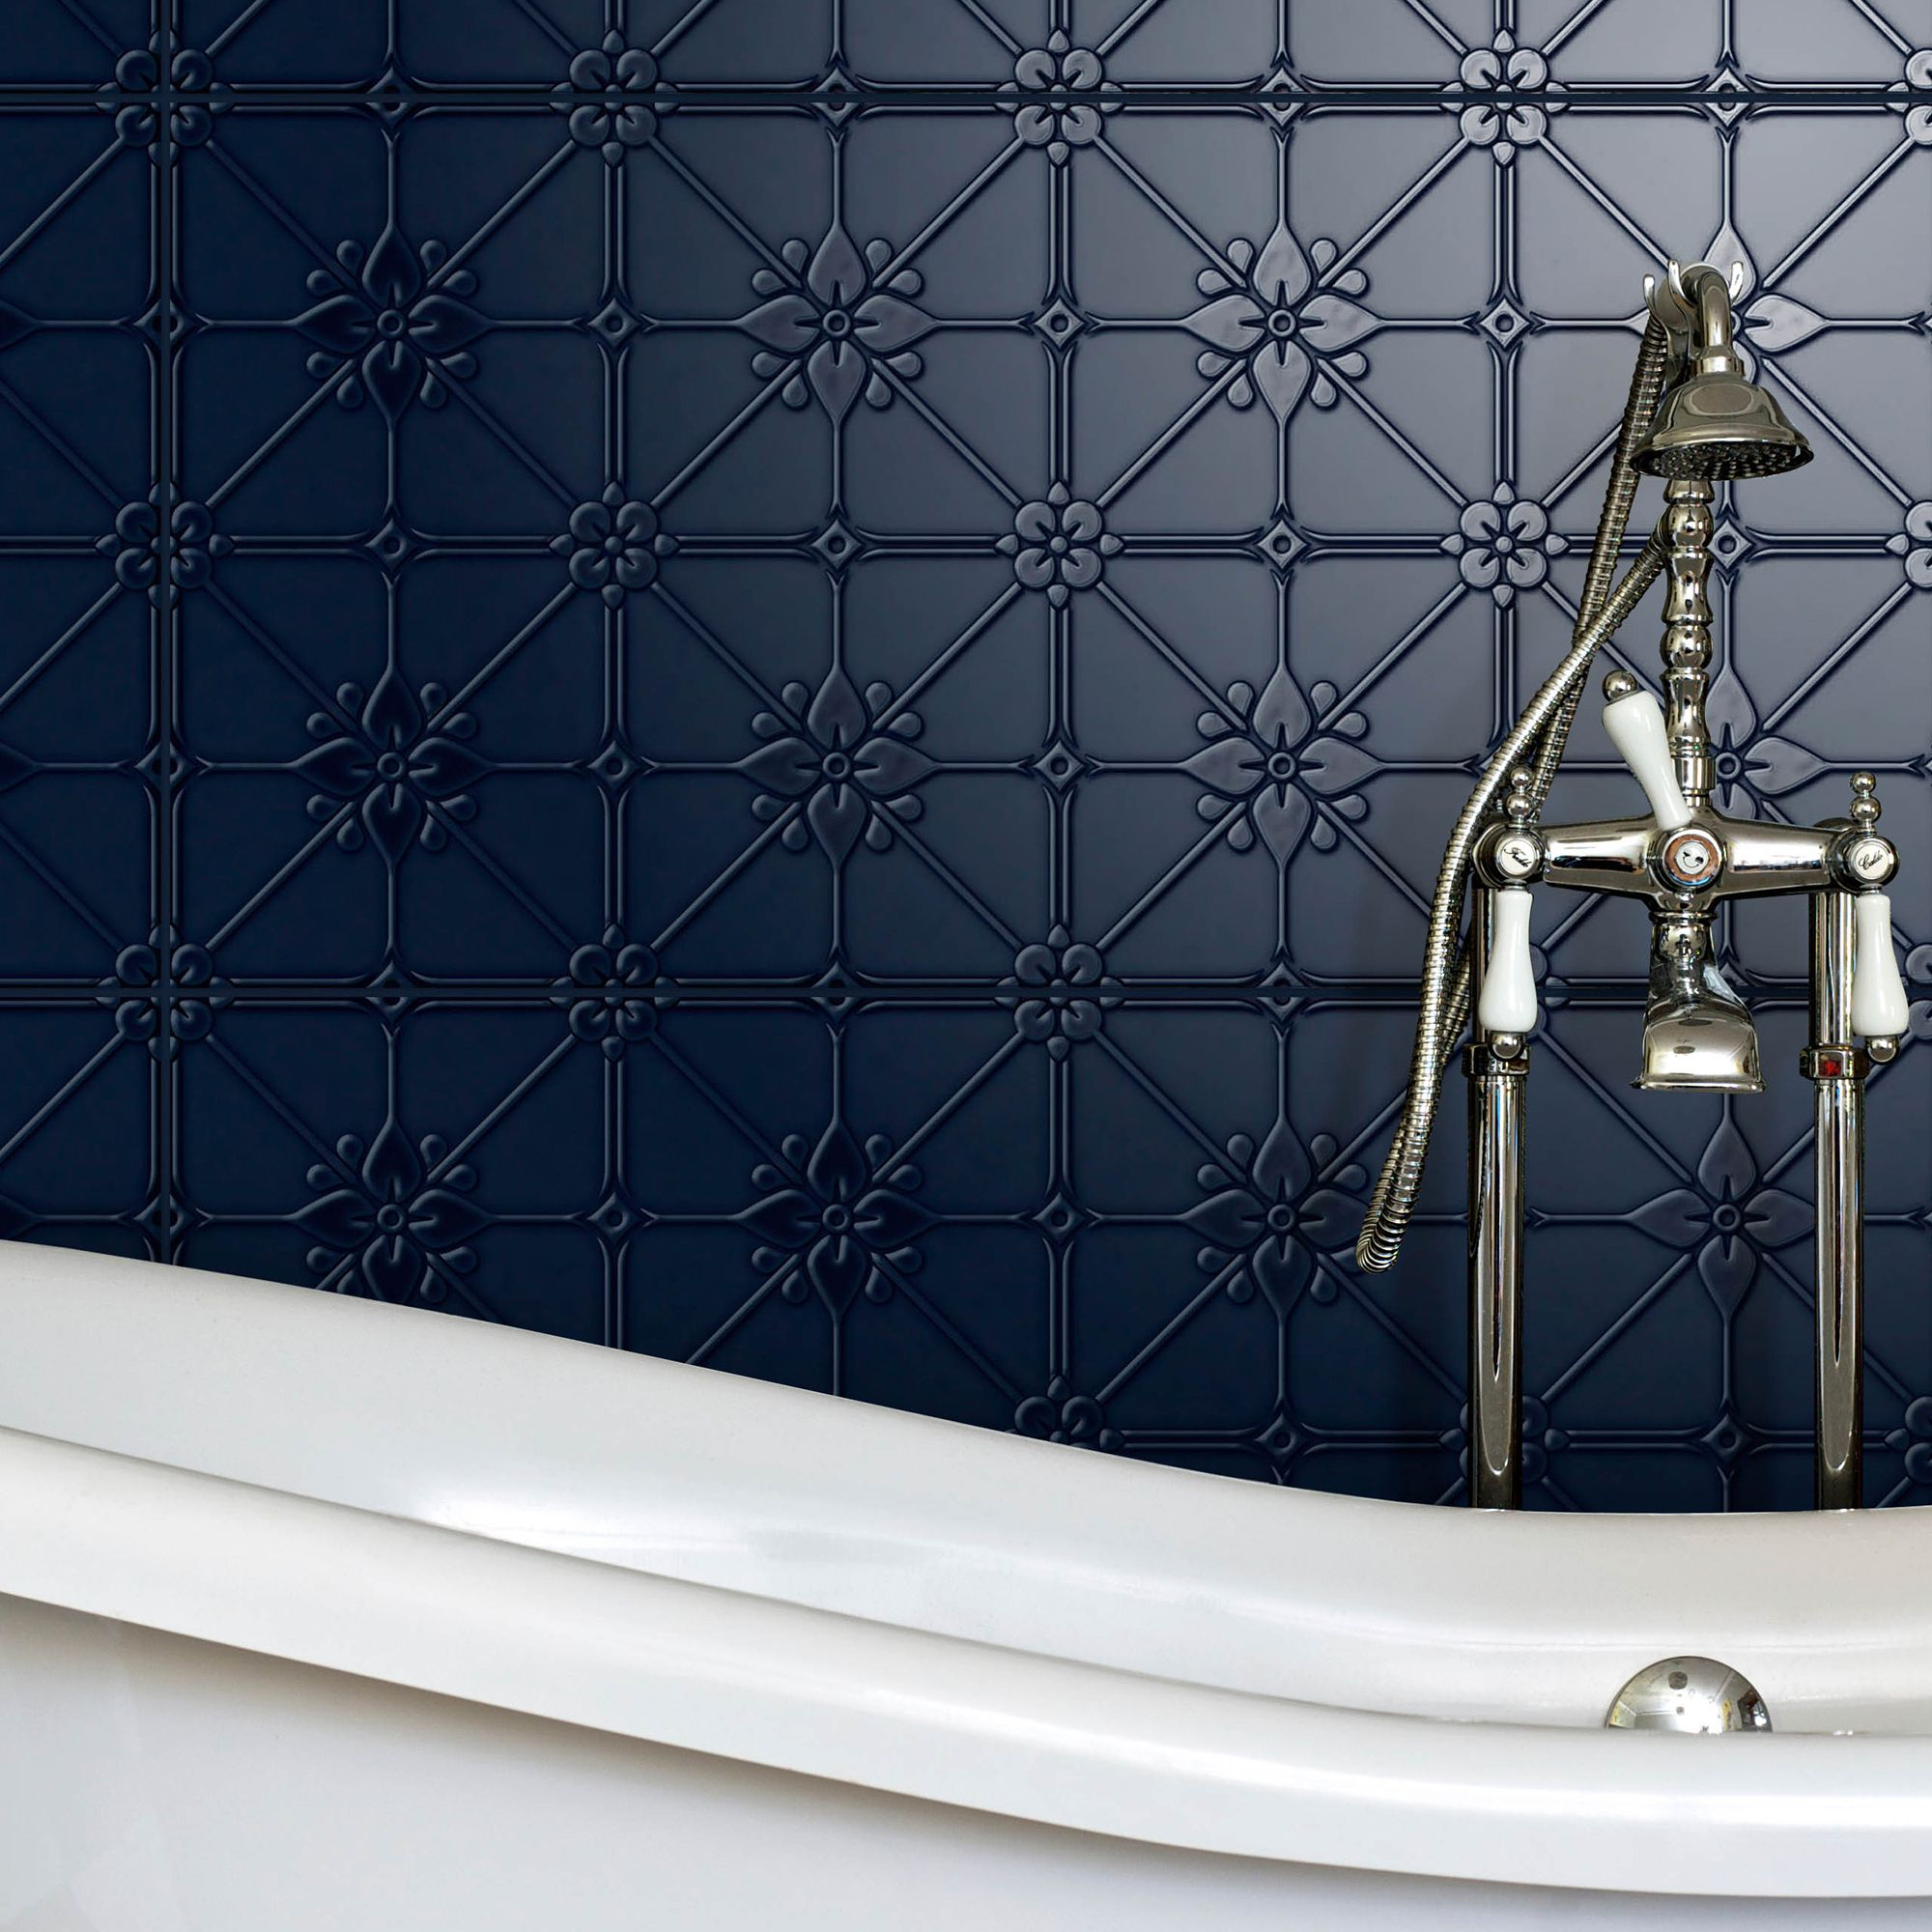 pressed metal look tiles are seriously great for a